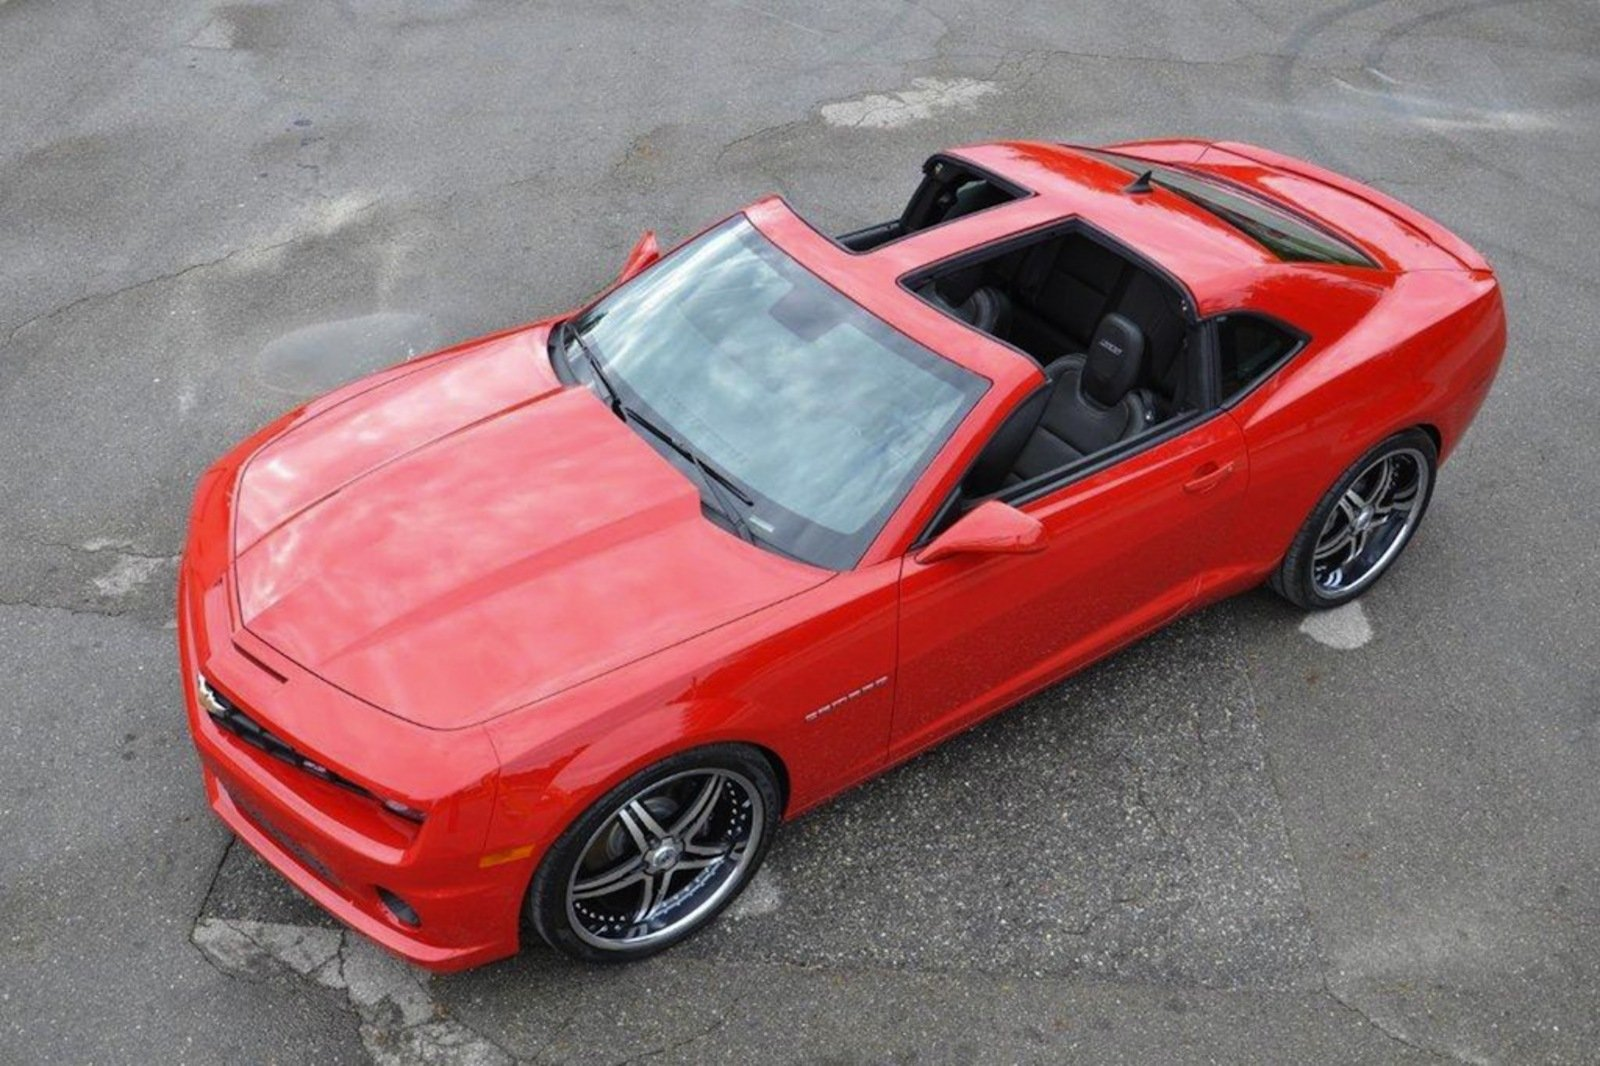 2010 Chevrolet Camaro T Top By Drop Top Customs Review